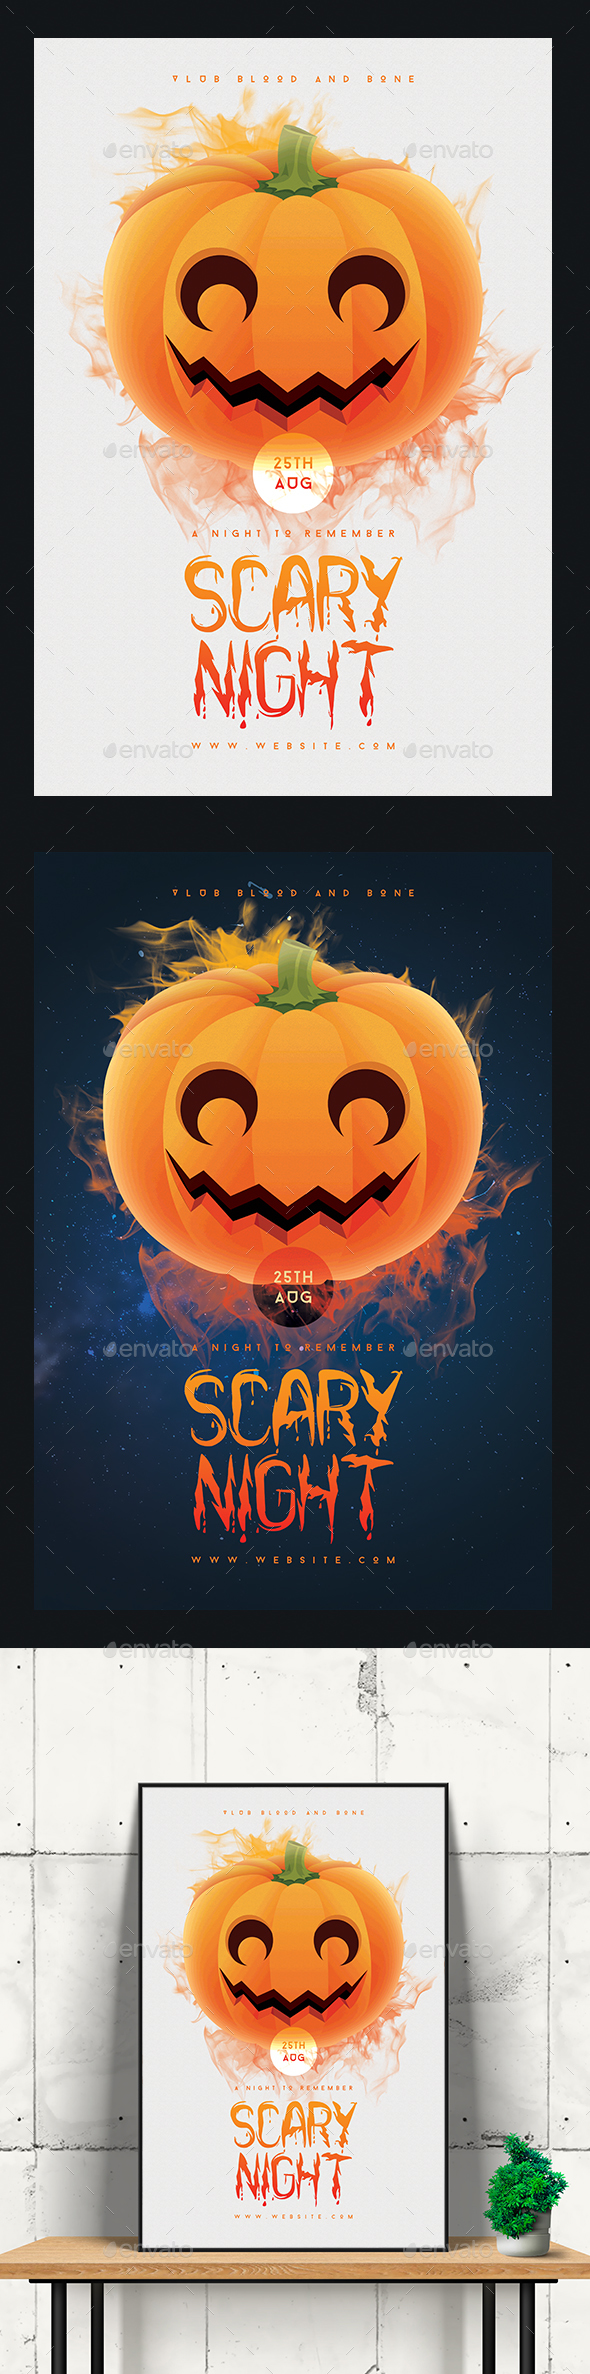 Scary Night Flyer/Poster - Clubs & Parties Events